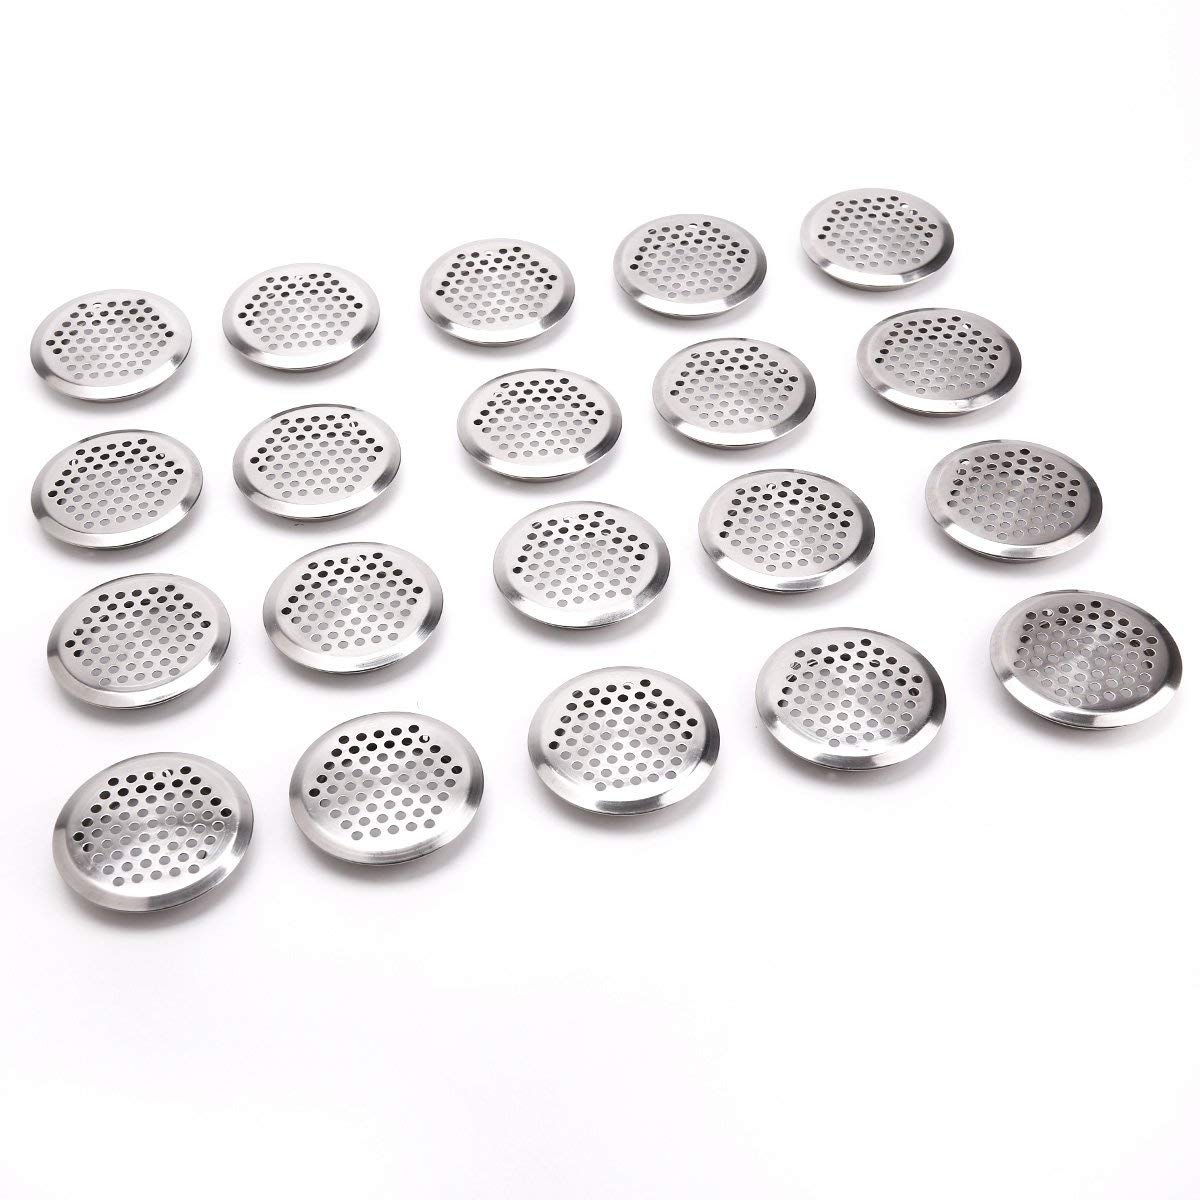 20 X Aeration Grid Ventilation Circle Lid 65mm Stainless Steel Silver Dropshipping